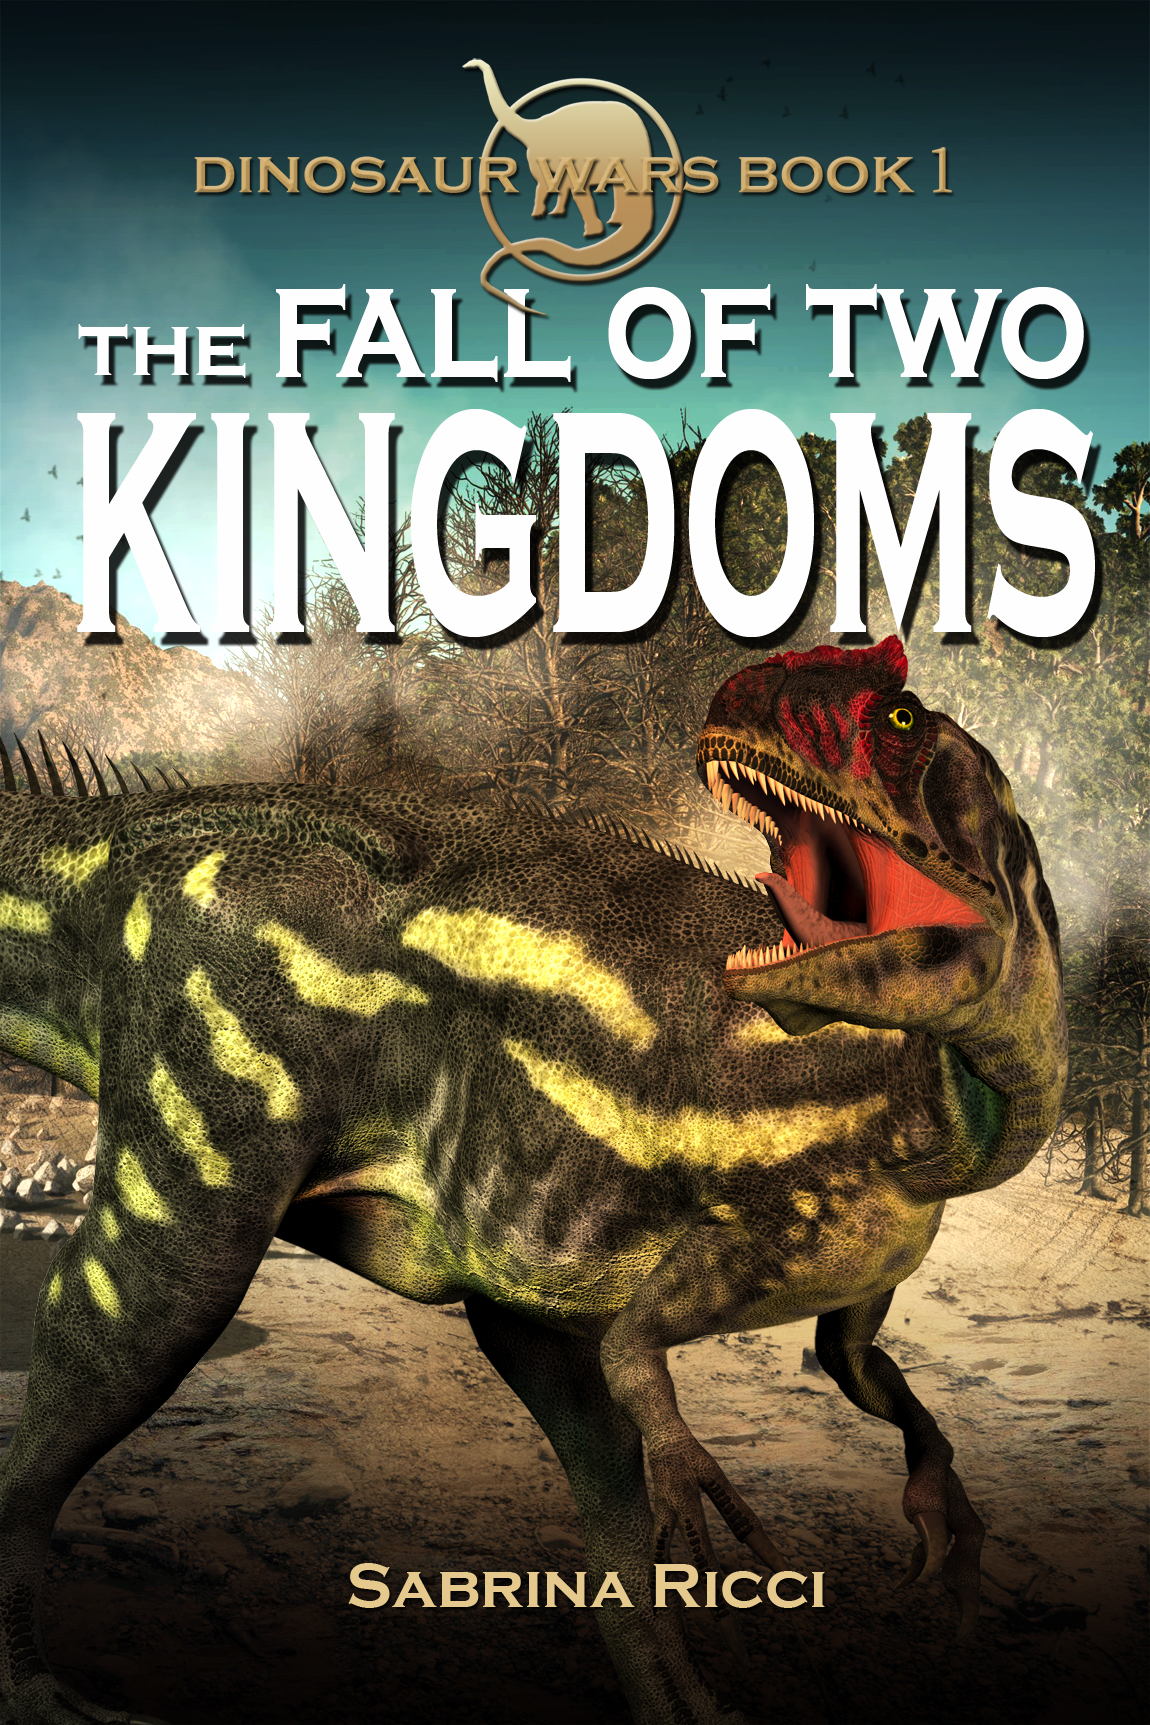 Dinosaur Wars: The Fall of Two Kingdoms